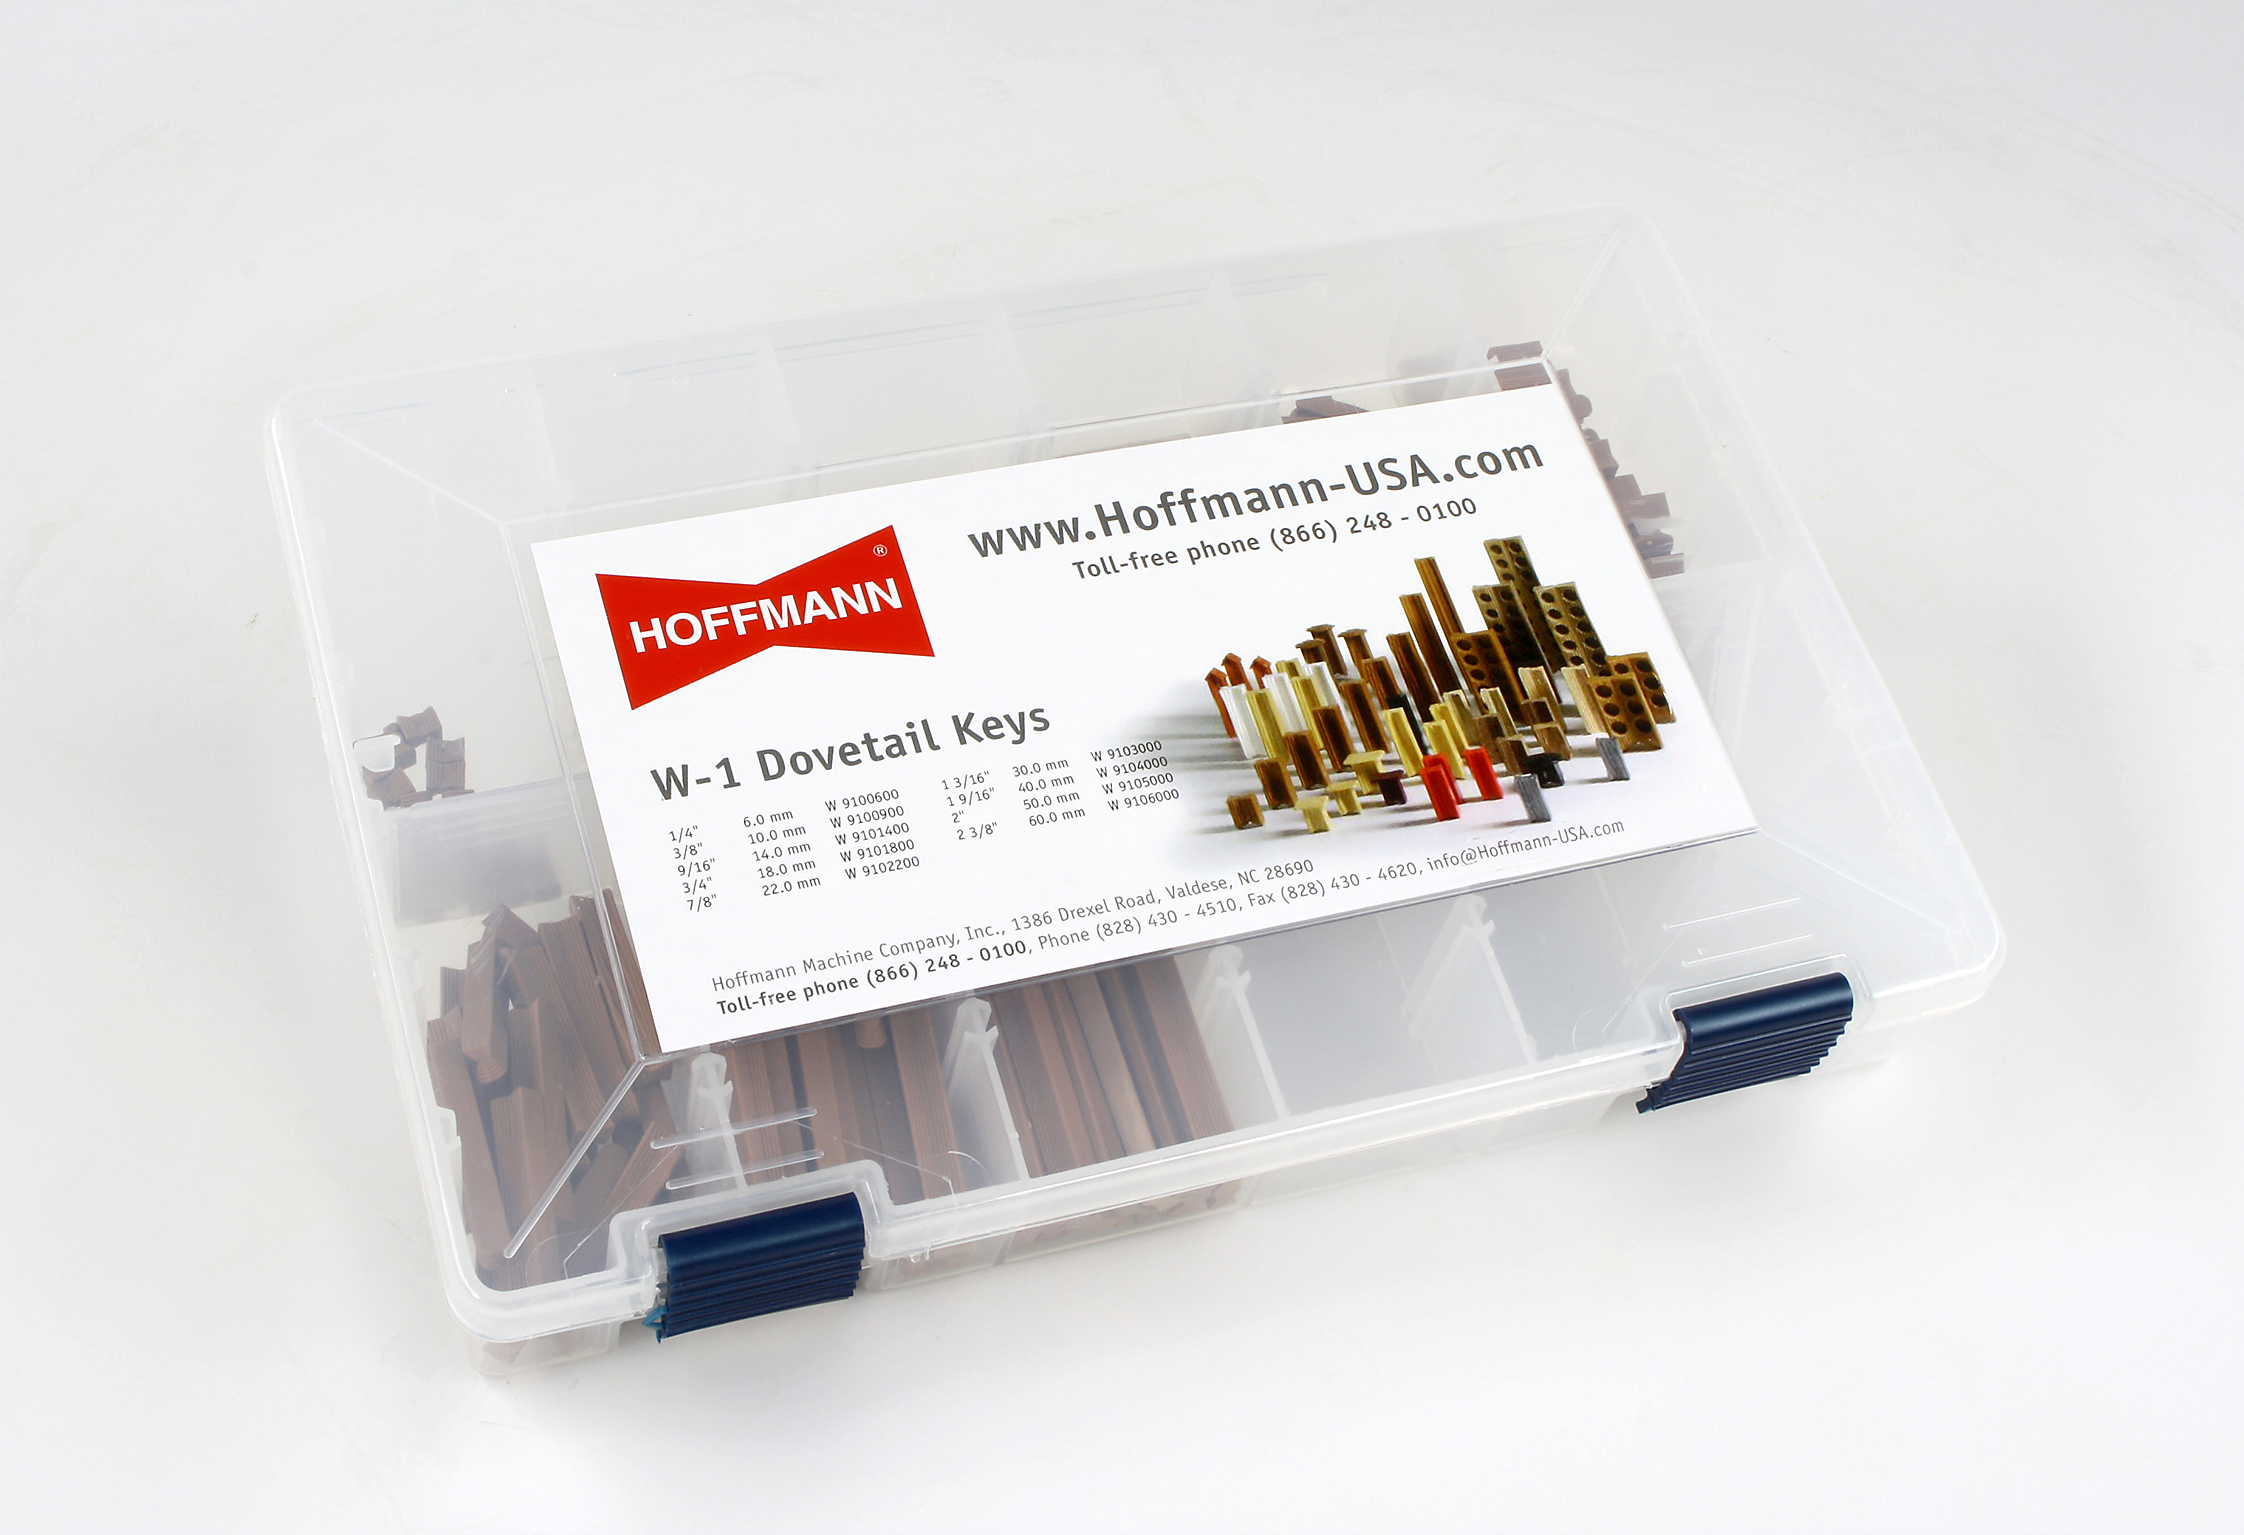 hoffmann-dovetail-key-sample-case-w1-closed.jpg